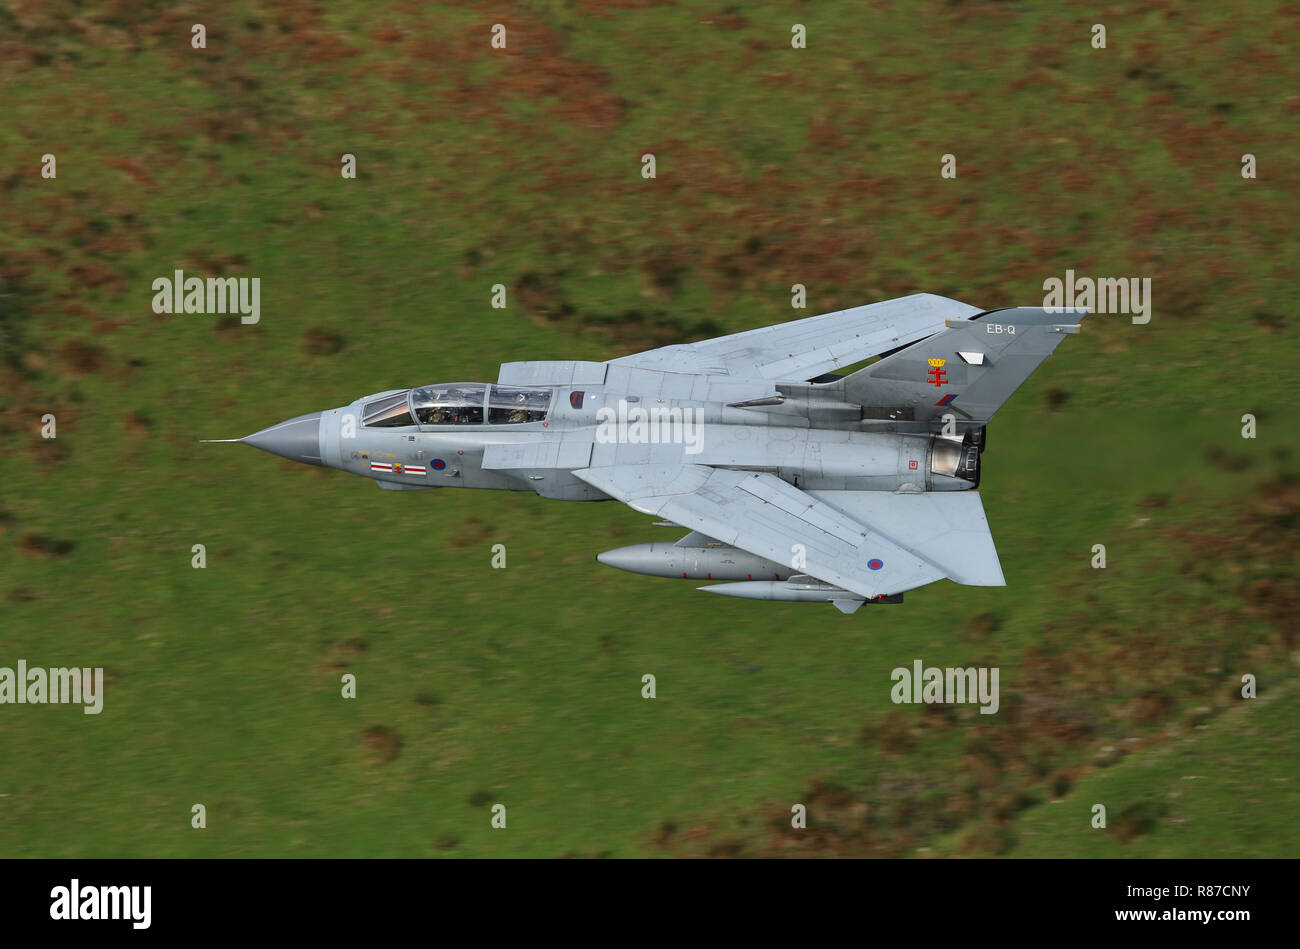 RAF Tornado GR4, serial no. ZA560, on a low level flight in the mach loop, Wales, UK.  The aircraft shows the markings of 41 Squadron. - Stock Image